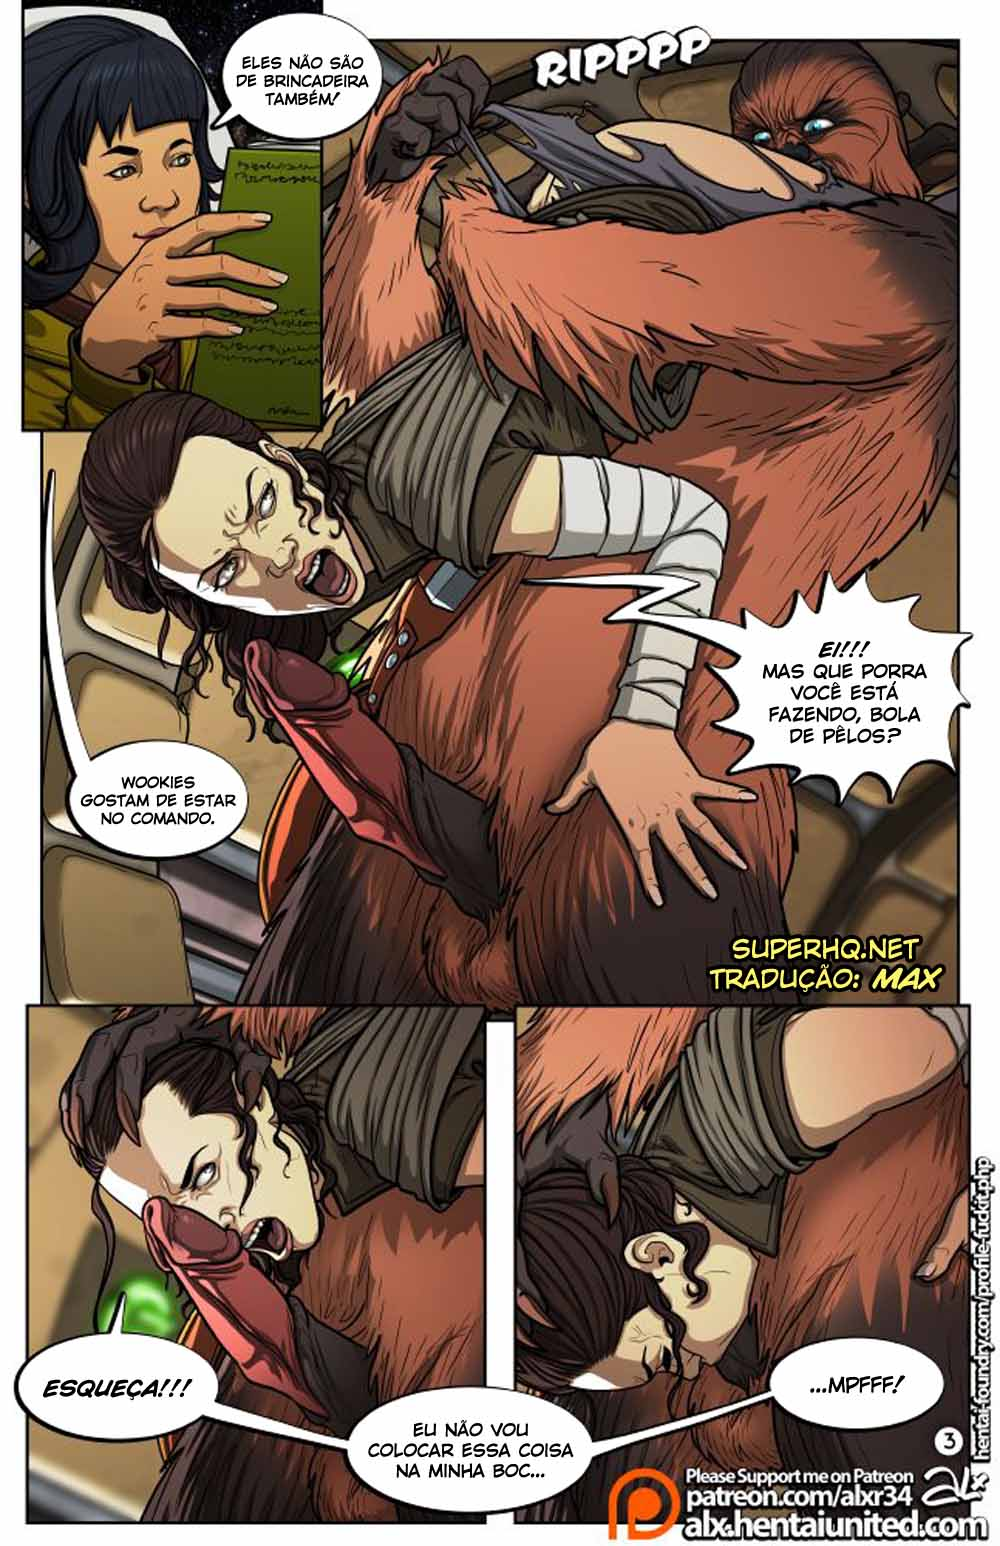 Pictures star wars sex something